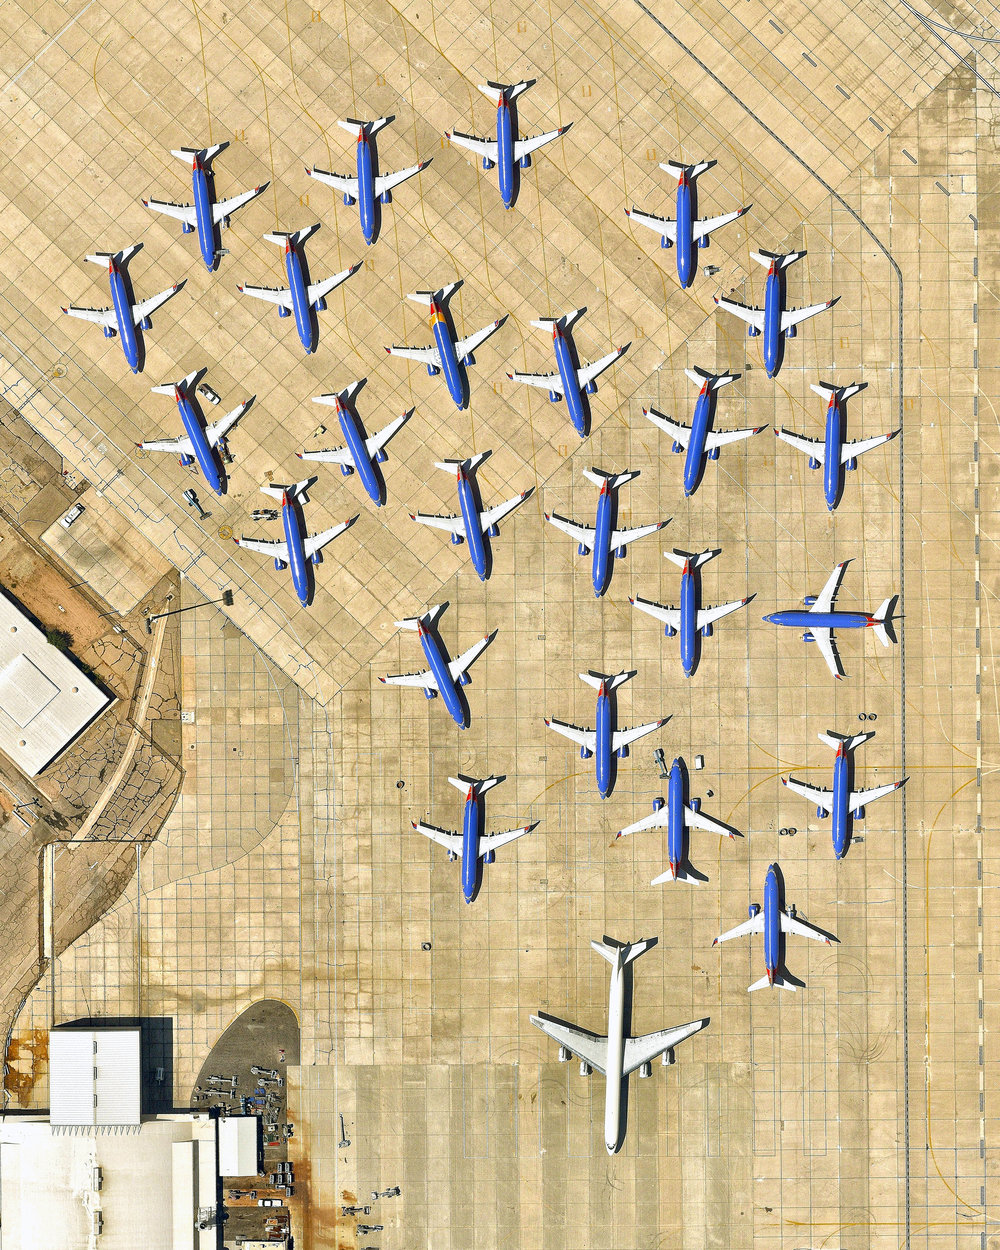 "In this Overview, 25 airplanes are parked in a cluster at the Southern California Logistics Airport in Victorville, California. Also known as Victorville Airport, it is home to Southern California Aviation, a large transitional facility for commercial aircraft. No commercial passenger services are offered at the airport except for fixed-based operator and charter flights.  34°35'51.0""N, 117°22'59.0""W  Source imagery: Nearmap"